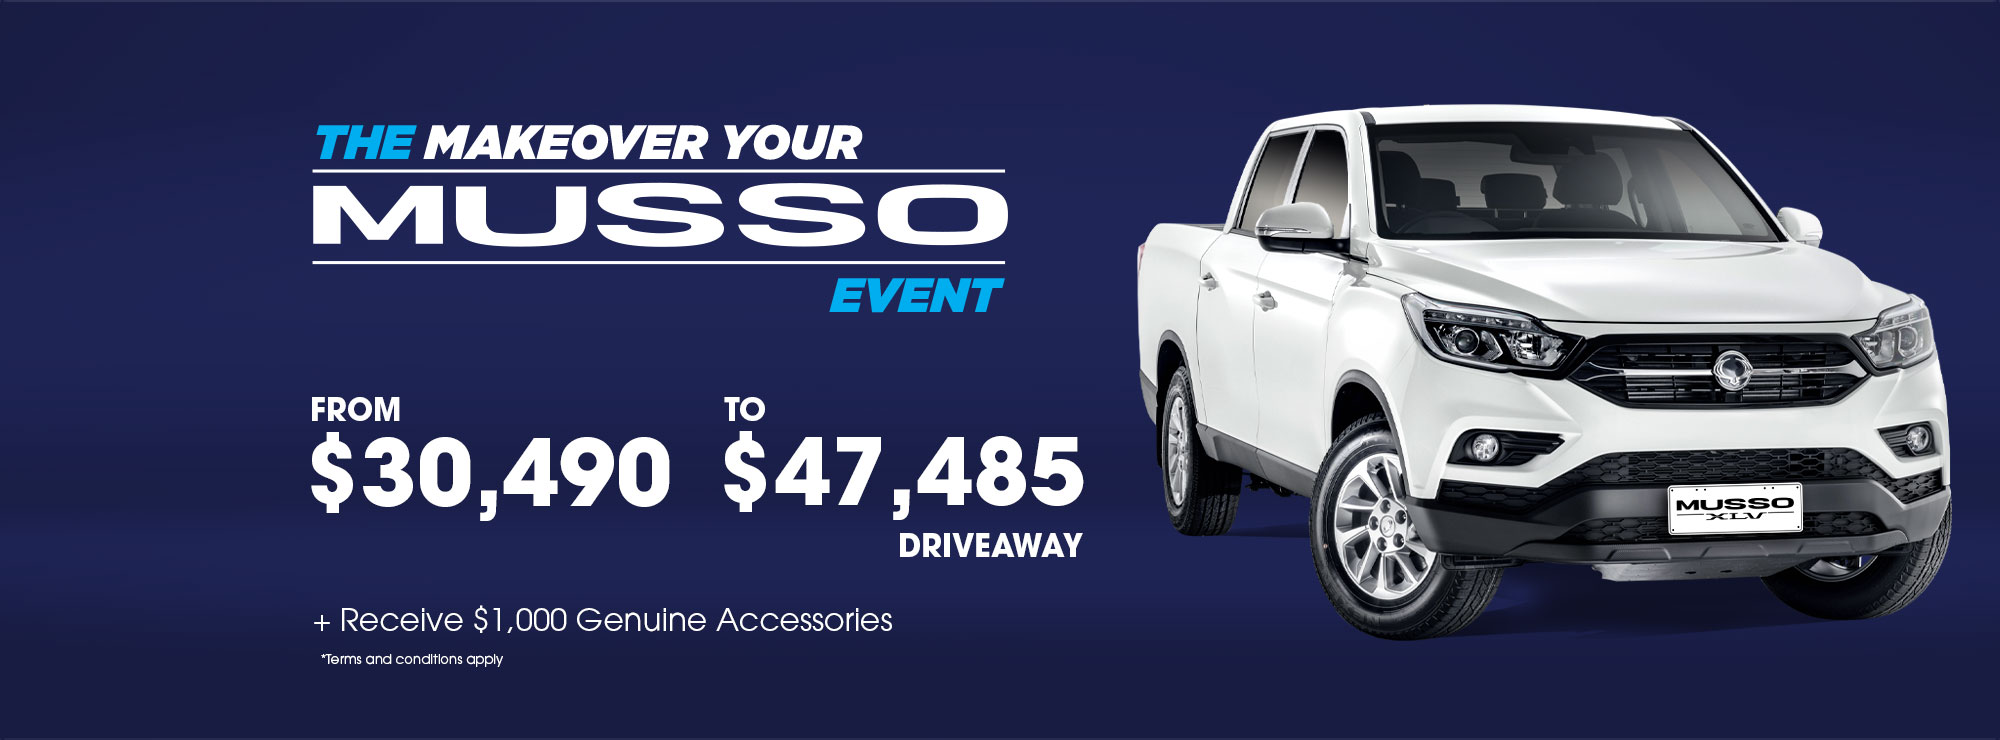 SsangYong-Musso-win